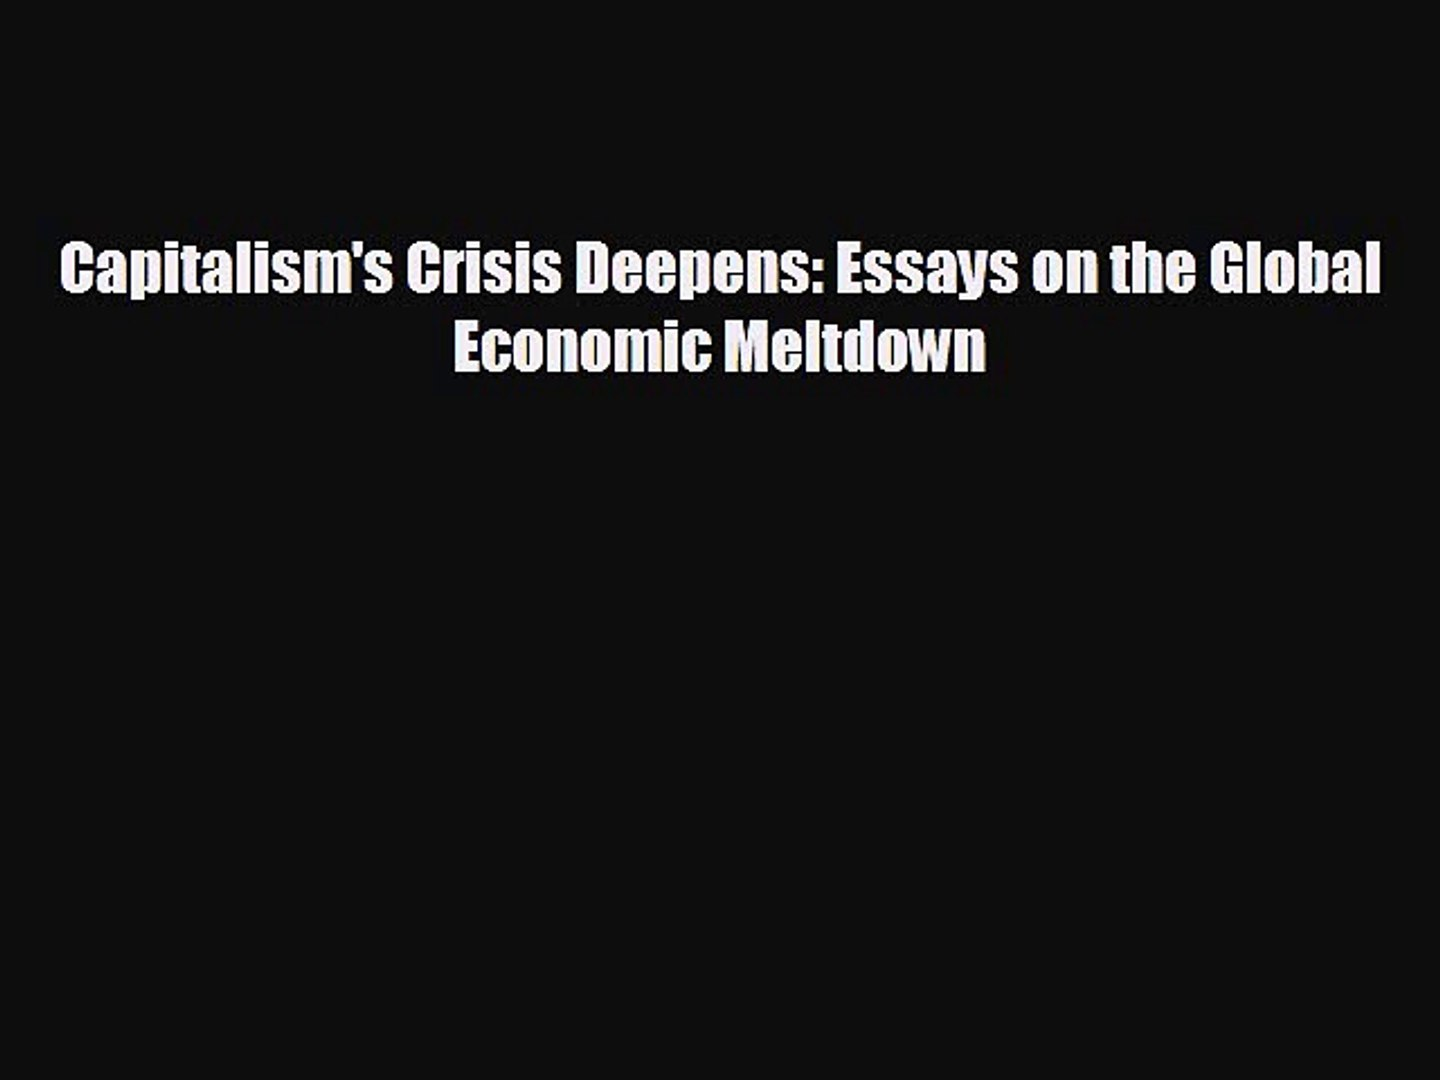 Capitalisms Crisis Deepens Essays on the Global Economic Meltdown